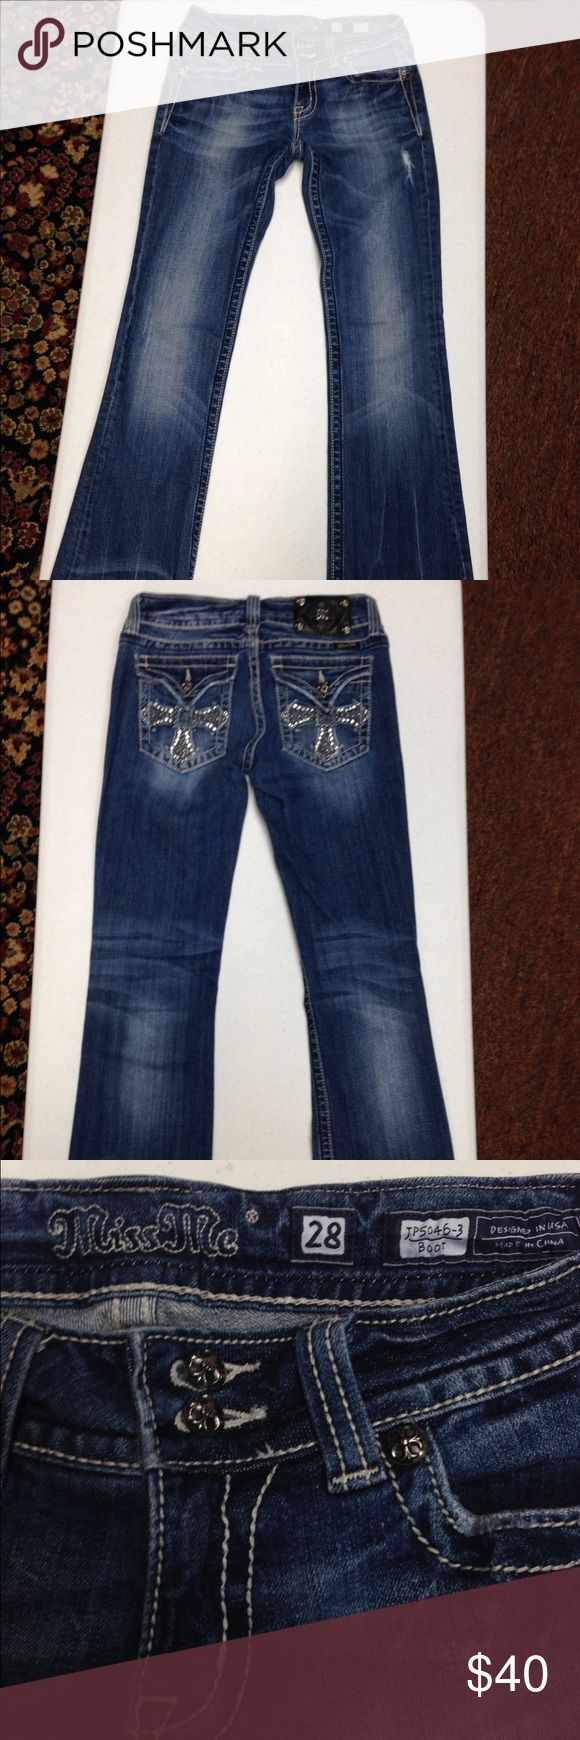 ⭐️Miss Me Cross Rhinestone Boot Cut Jeans⭐️ Size 28 JP5046-3 Miss Me Cross Rhinestone boot cut jeans. Jeans are in Excellent condition. Inseam is 32'. Barely worn, maybe two times. Miss Me Jeans Boot Cut